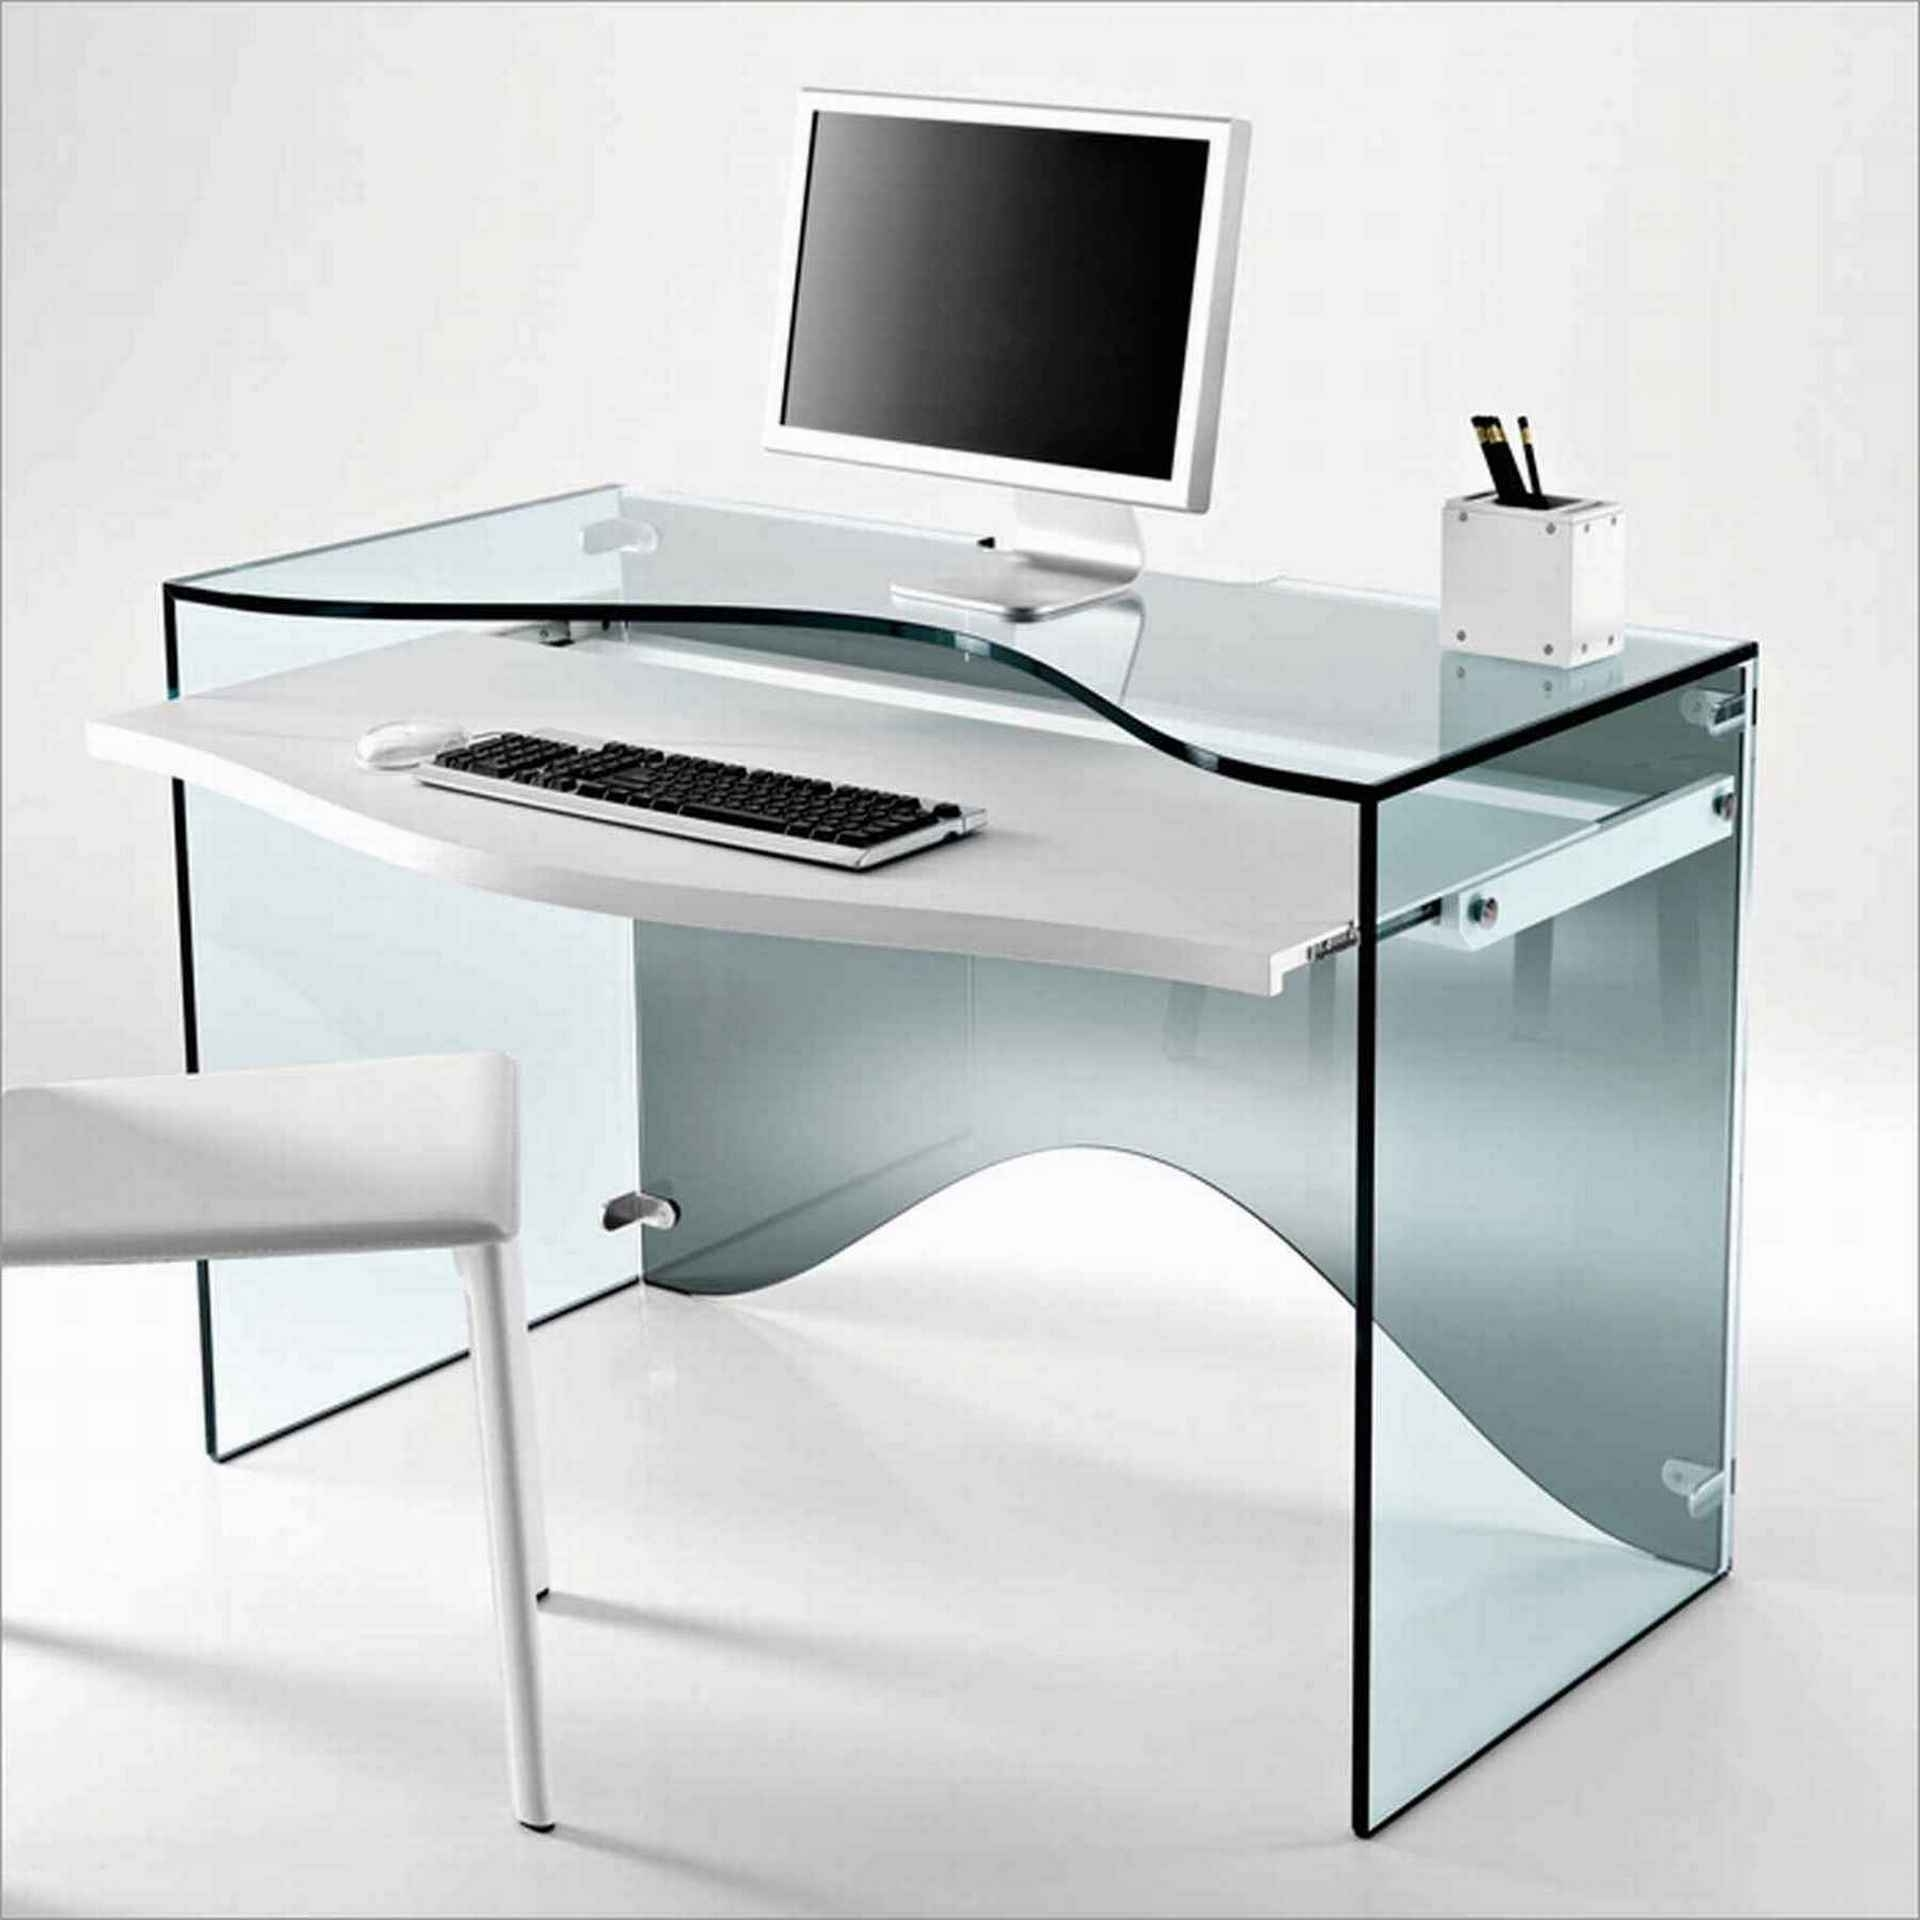 2018 Modern Computer Desks Inside Funiture: Modern Computer Desks Ideas With Transparent Glass (View 2 of 20)